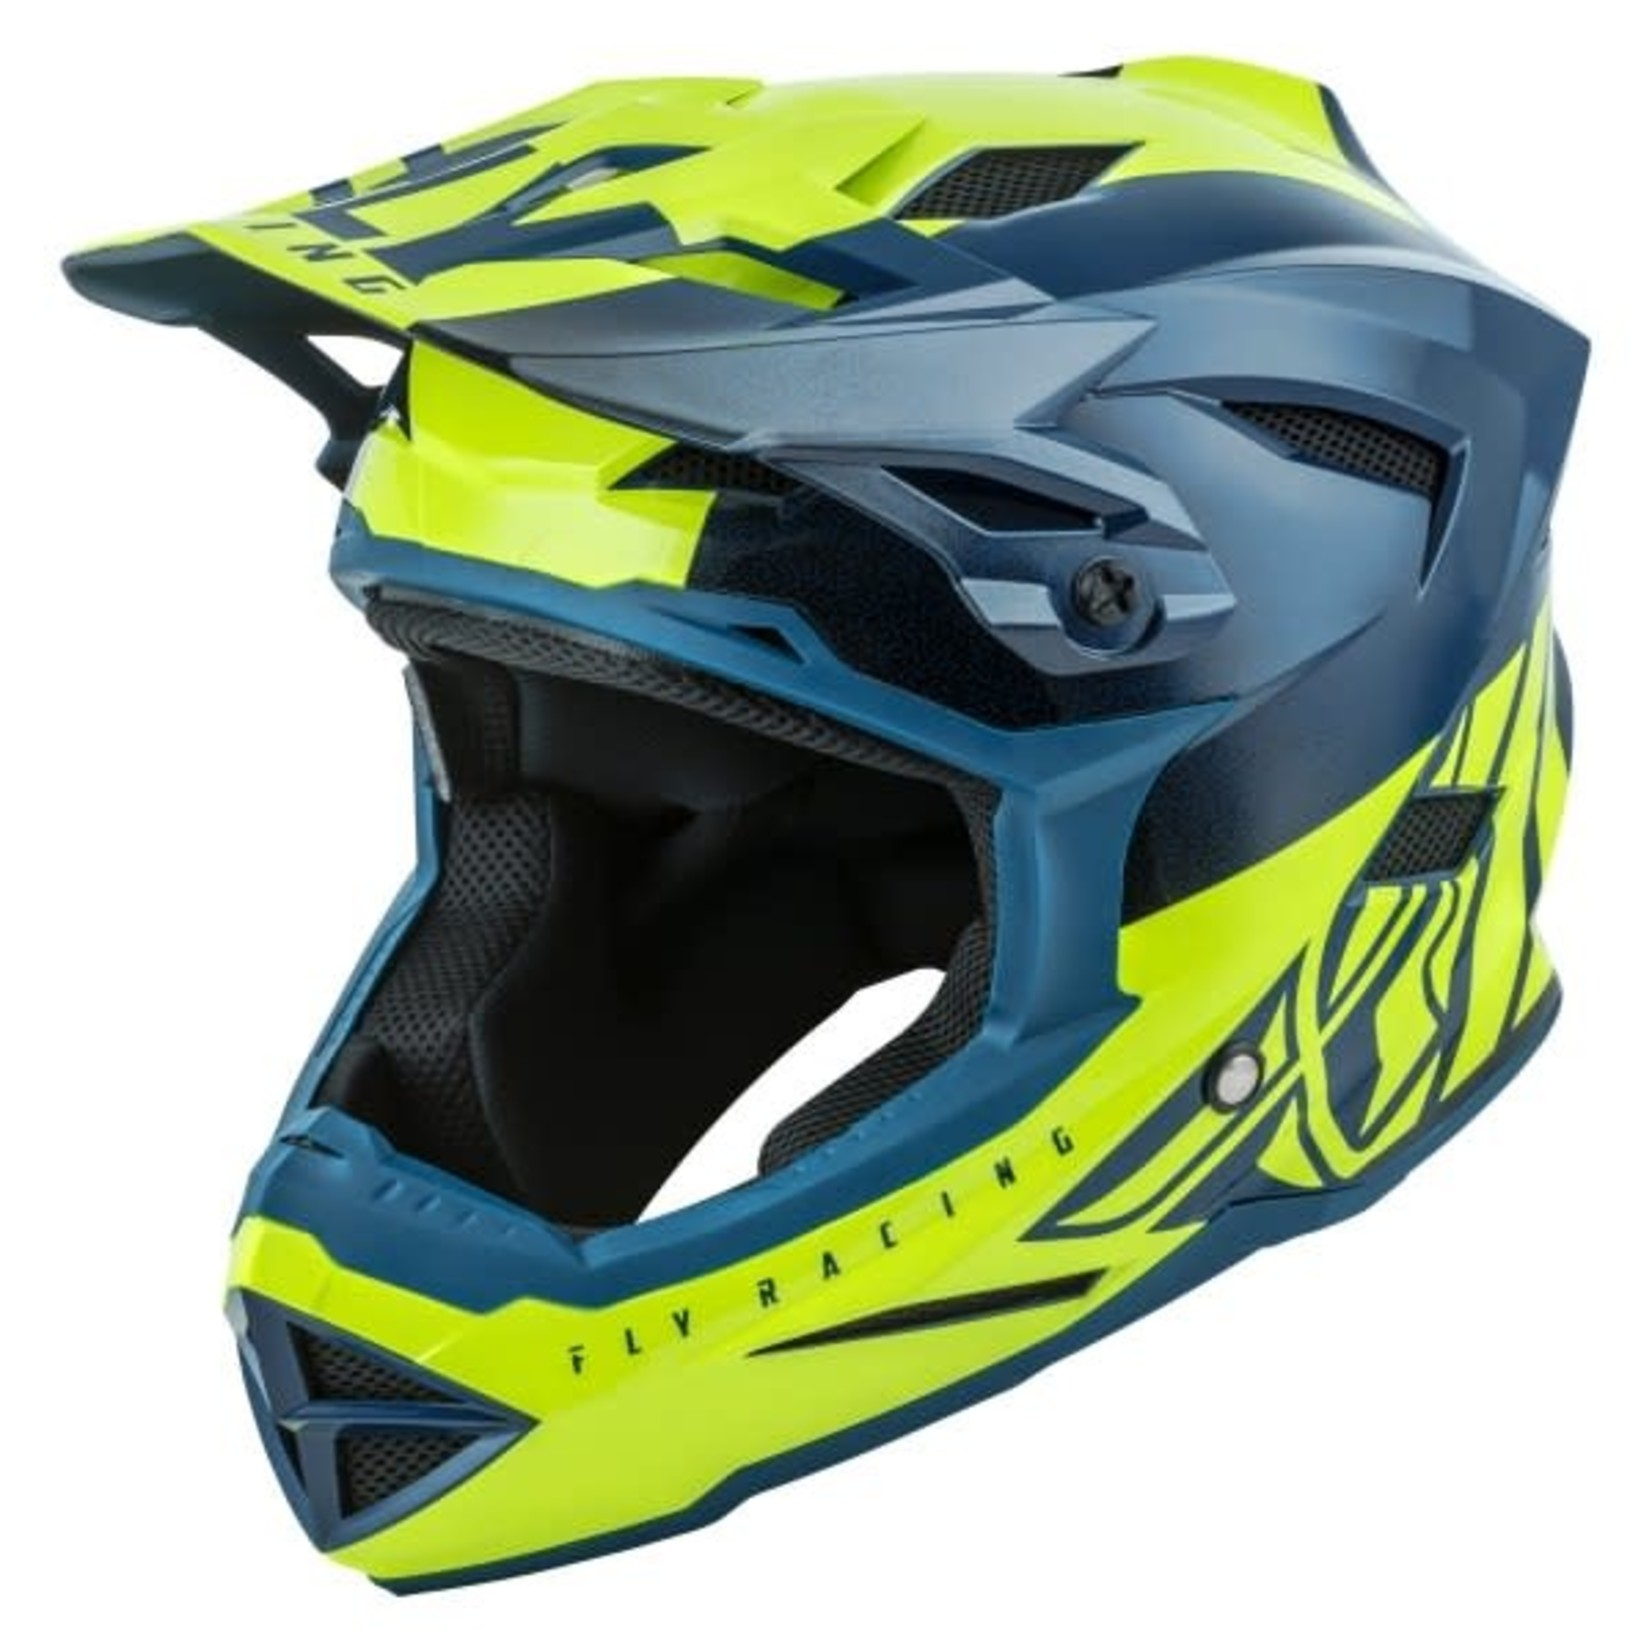 FLY RACING DEFAULT HELMET TEAL/HI-VIS YELLOW SM